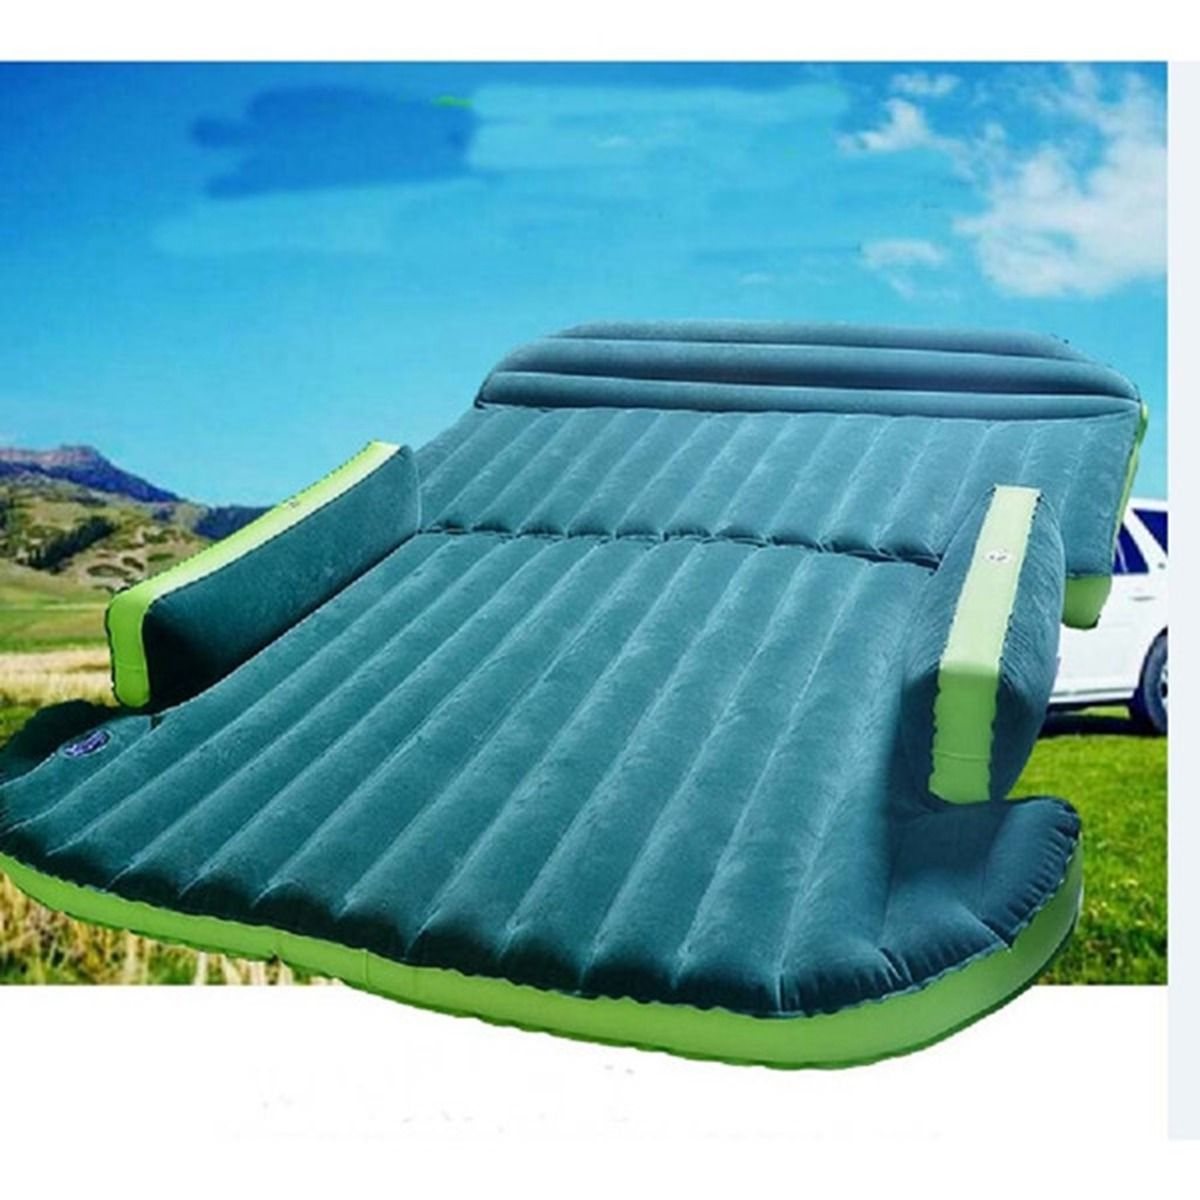 Car Inflatable Mattress - Seat Travel Bed Air Bed Cushion Travel Beds Sofa with Pump Camping Moisture-proof Pad Outdoor for SUV